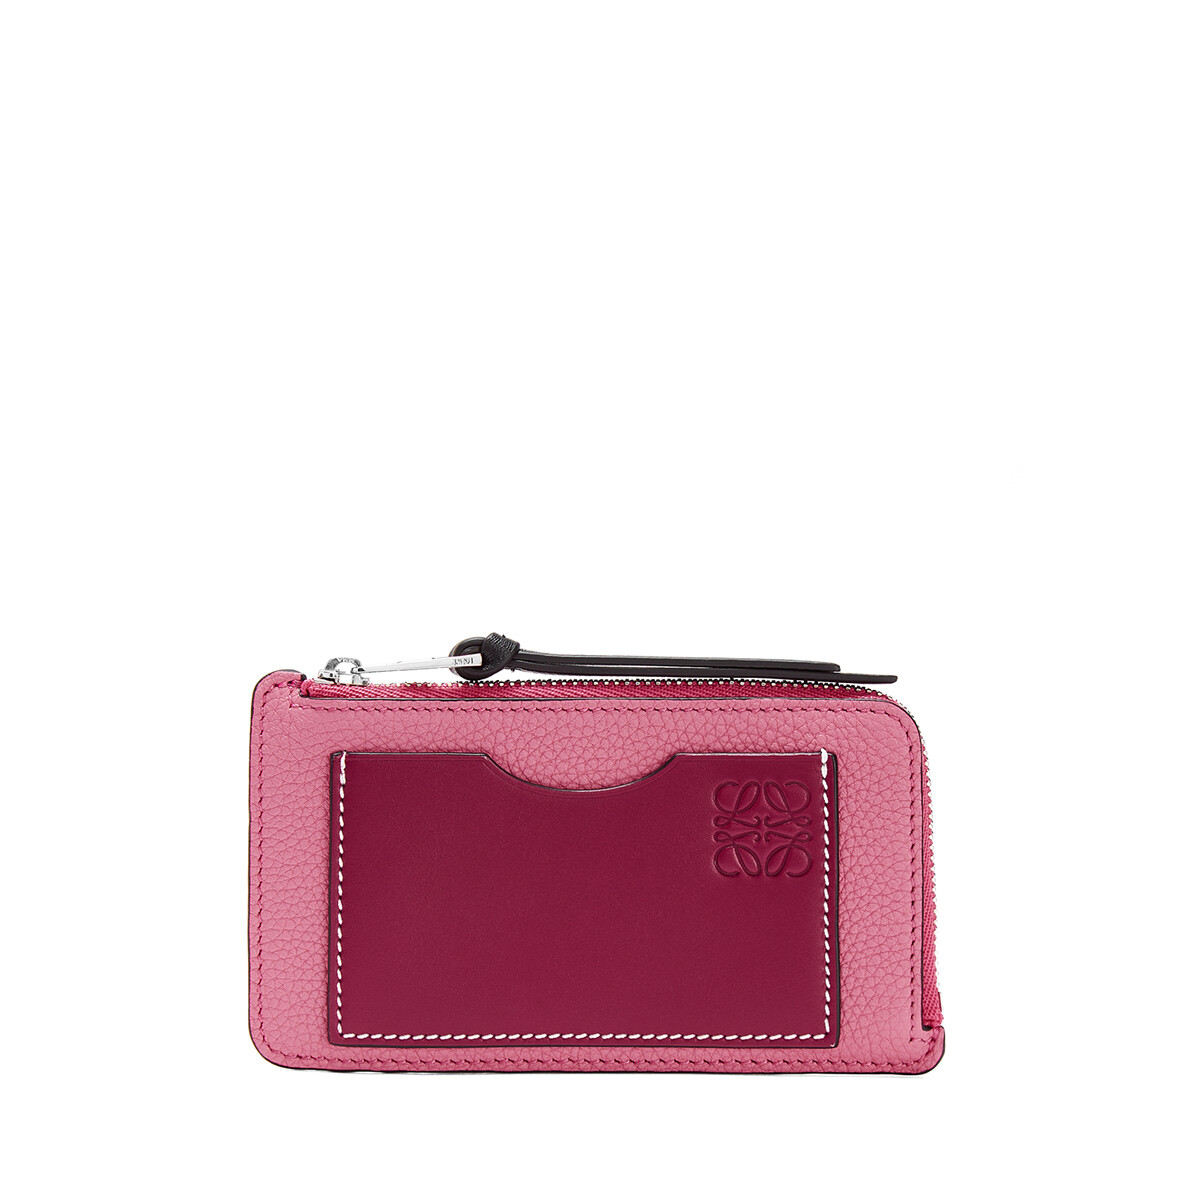 LOEWE Coin Cardholder Large Wild Rose/Raspberry front